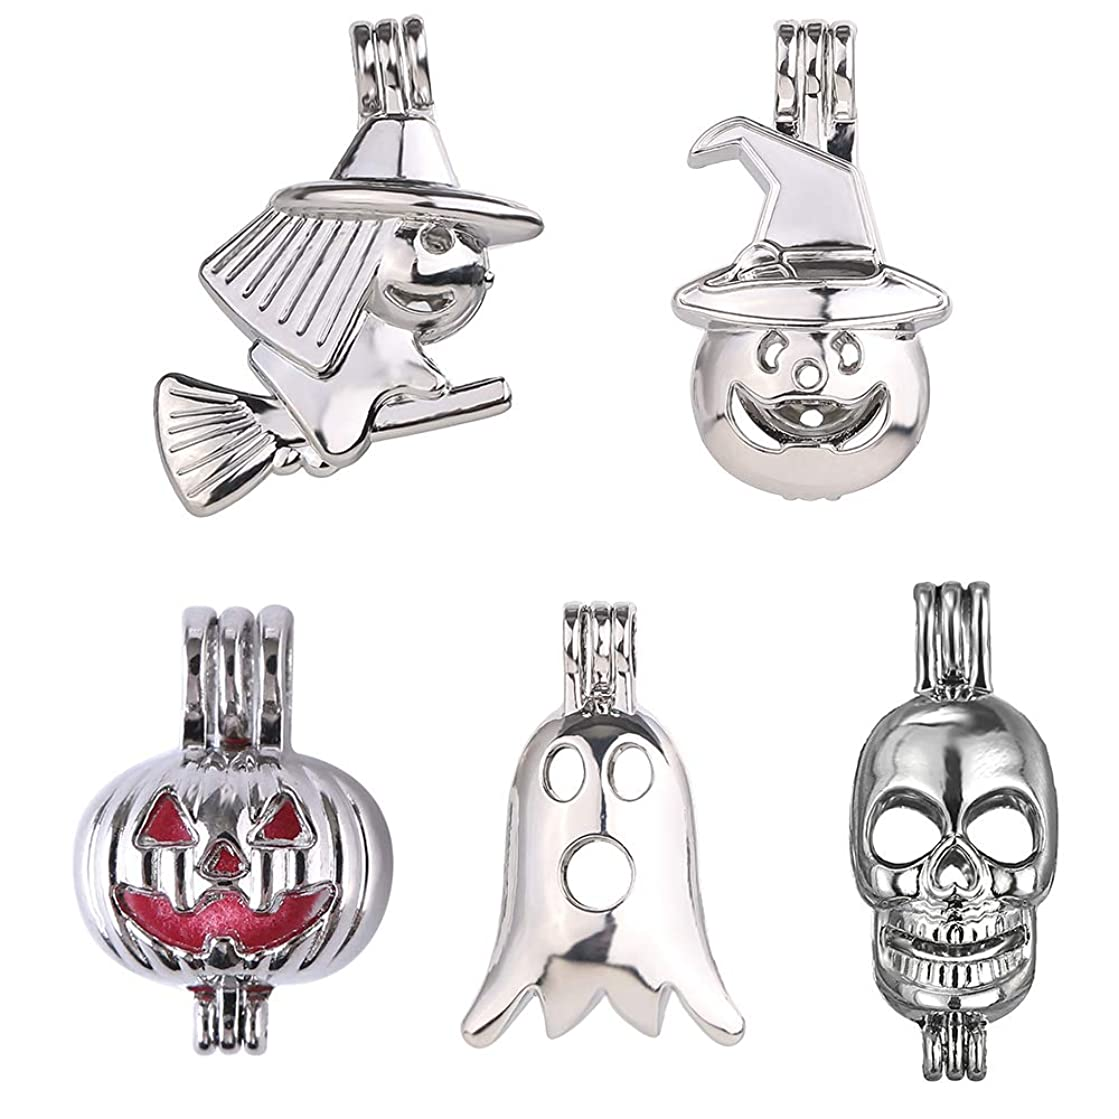 Fantasy 10pcs Mixed Halloween Pumpkin Skull Witch Broom Platinum Plated Hollow Pearl Bead Cage Pendant Essential Oil Scent Diffuser Pendant Necklace Jewelry Making Supplies (Halloween)